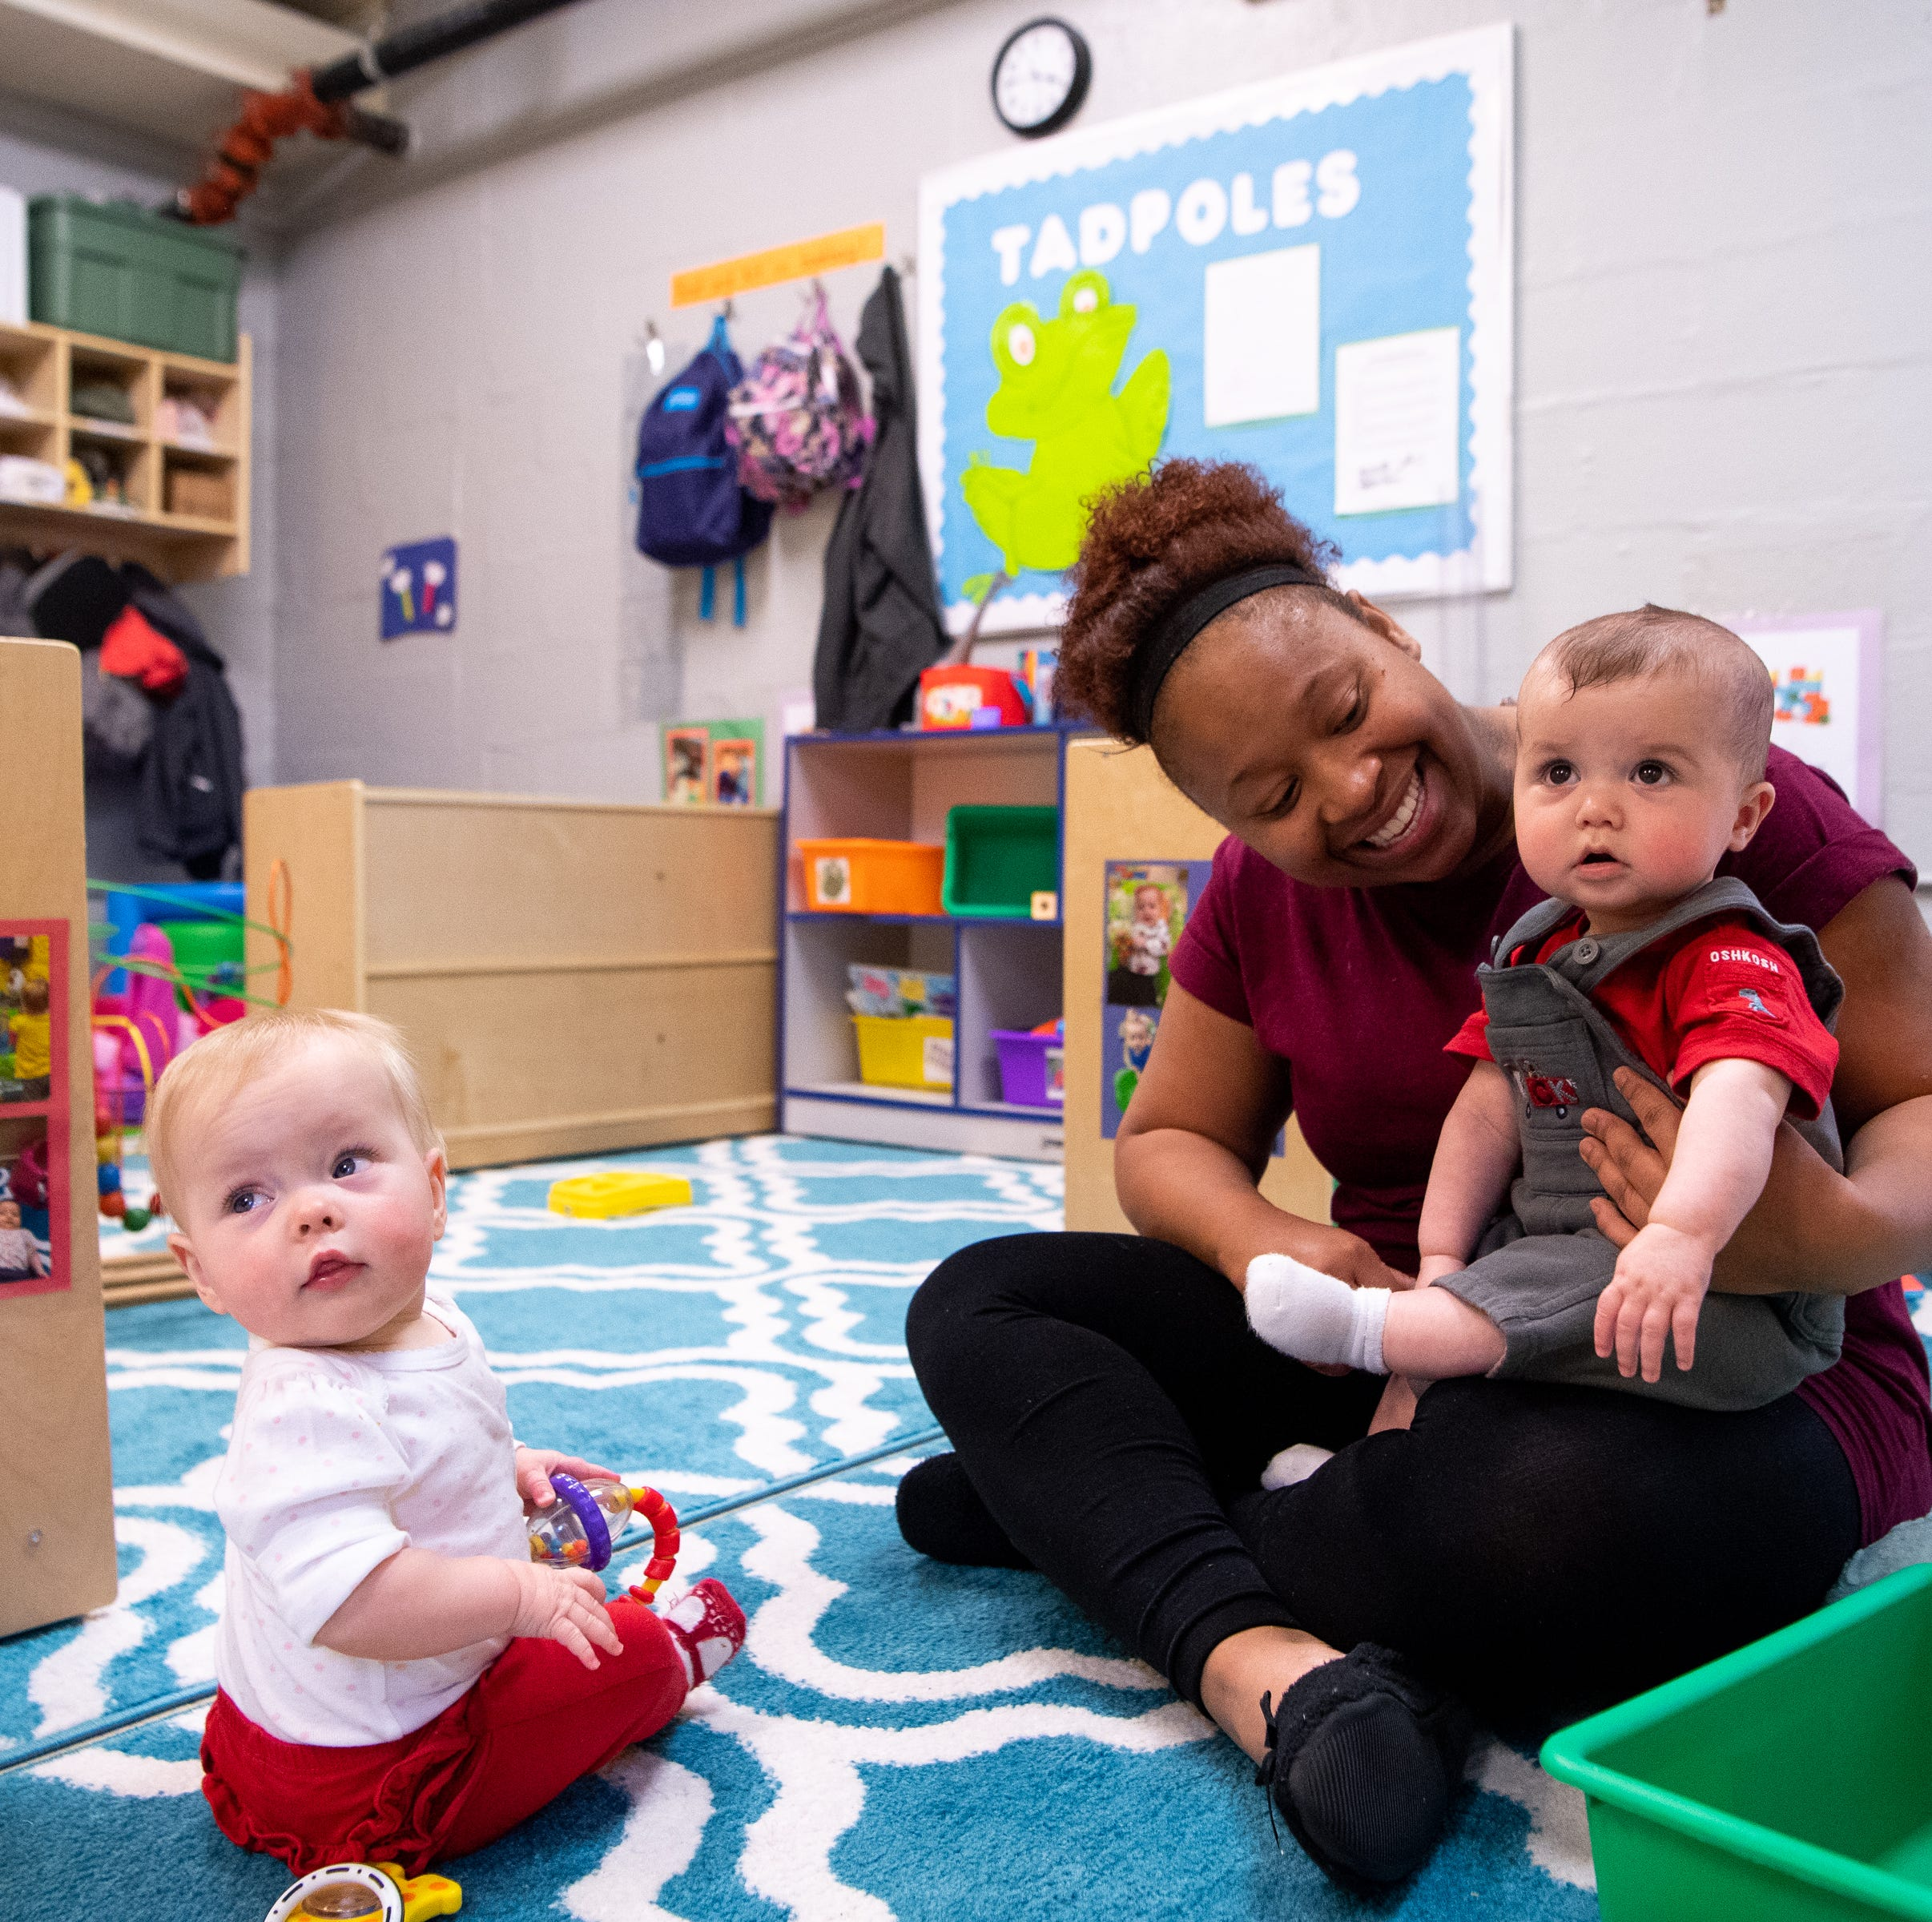 For some teachers, the breaking point isn't salary or support. It's child care.